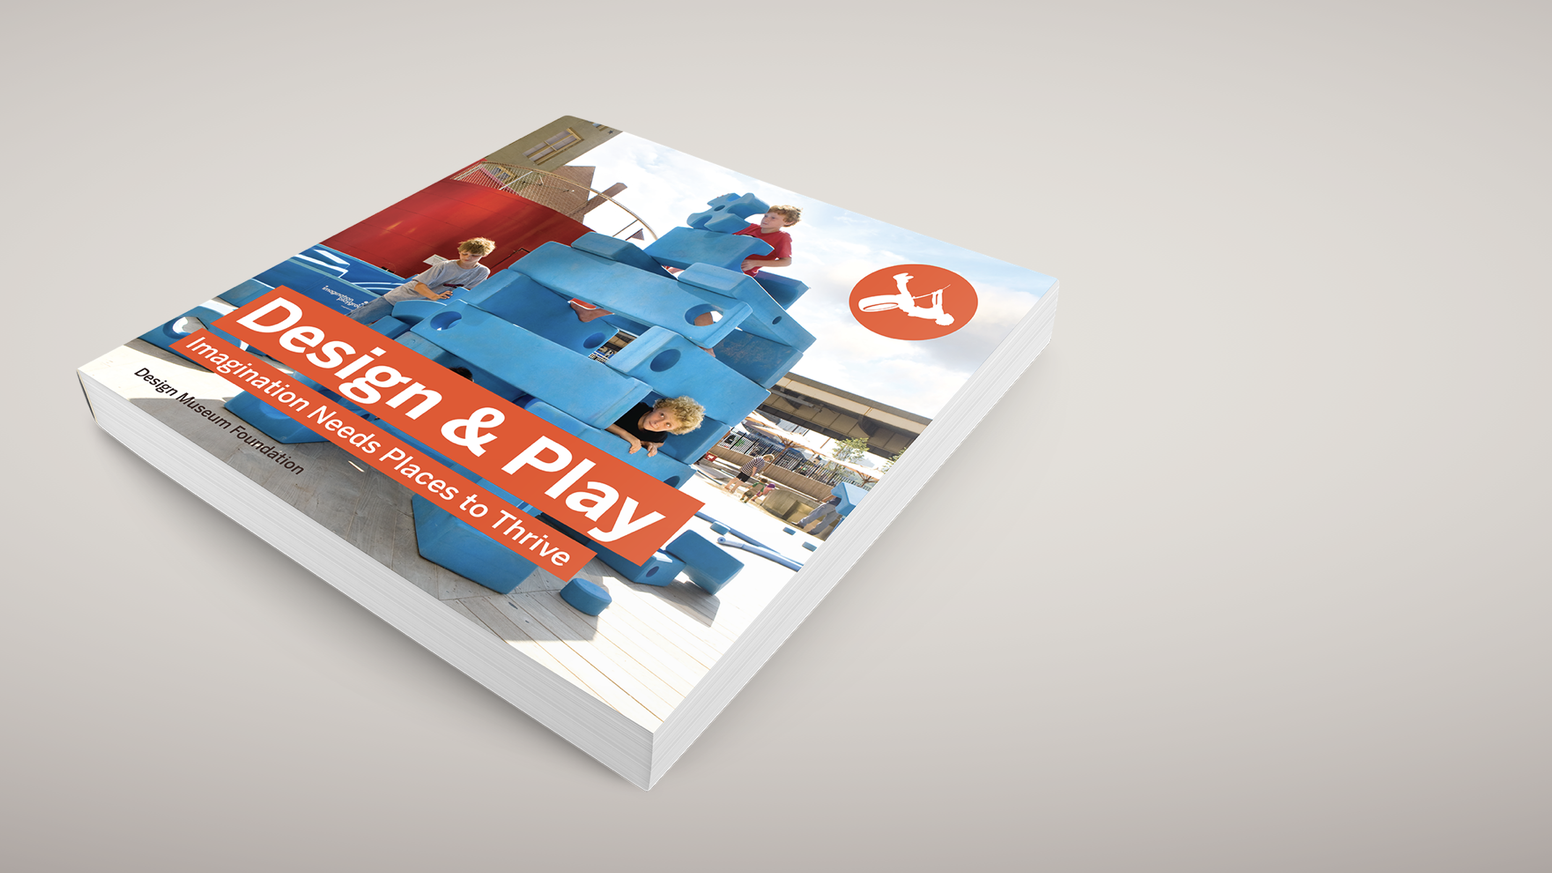 Design & Play is a book about design and the importance of outdoor play,  featuring